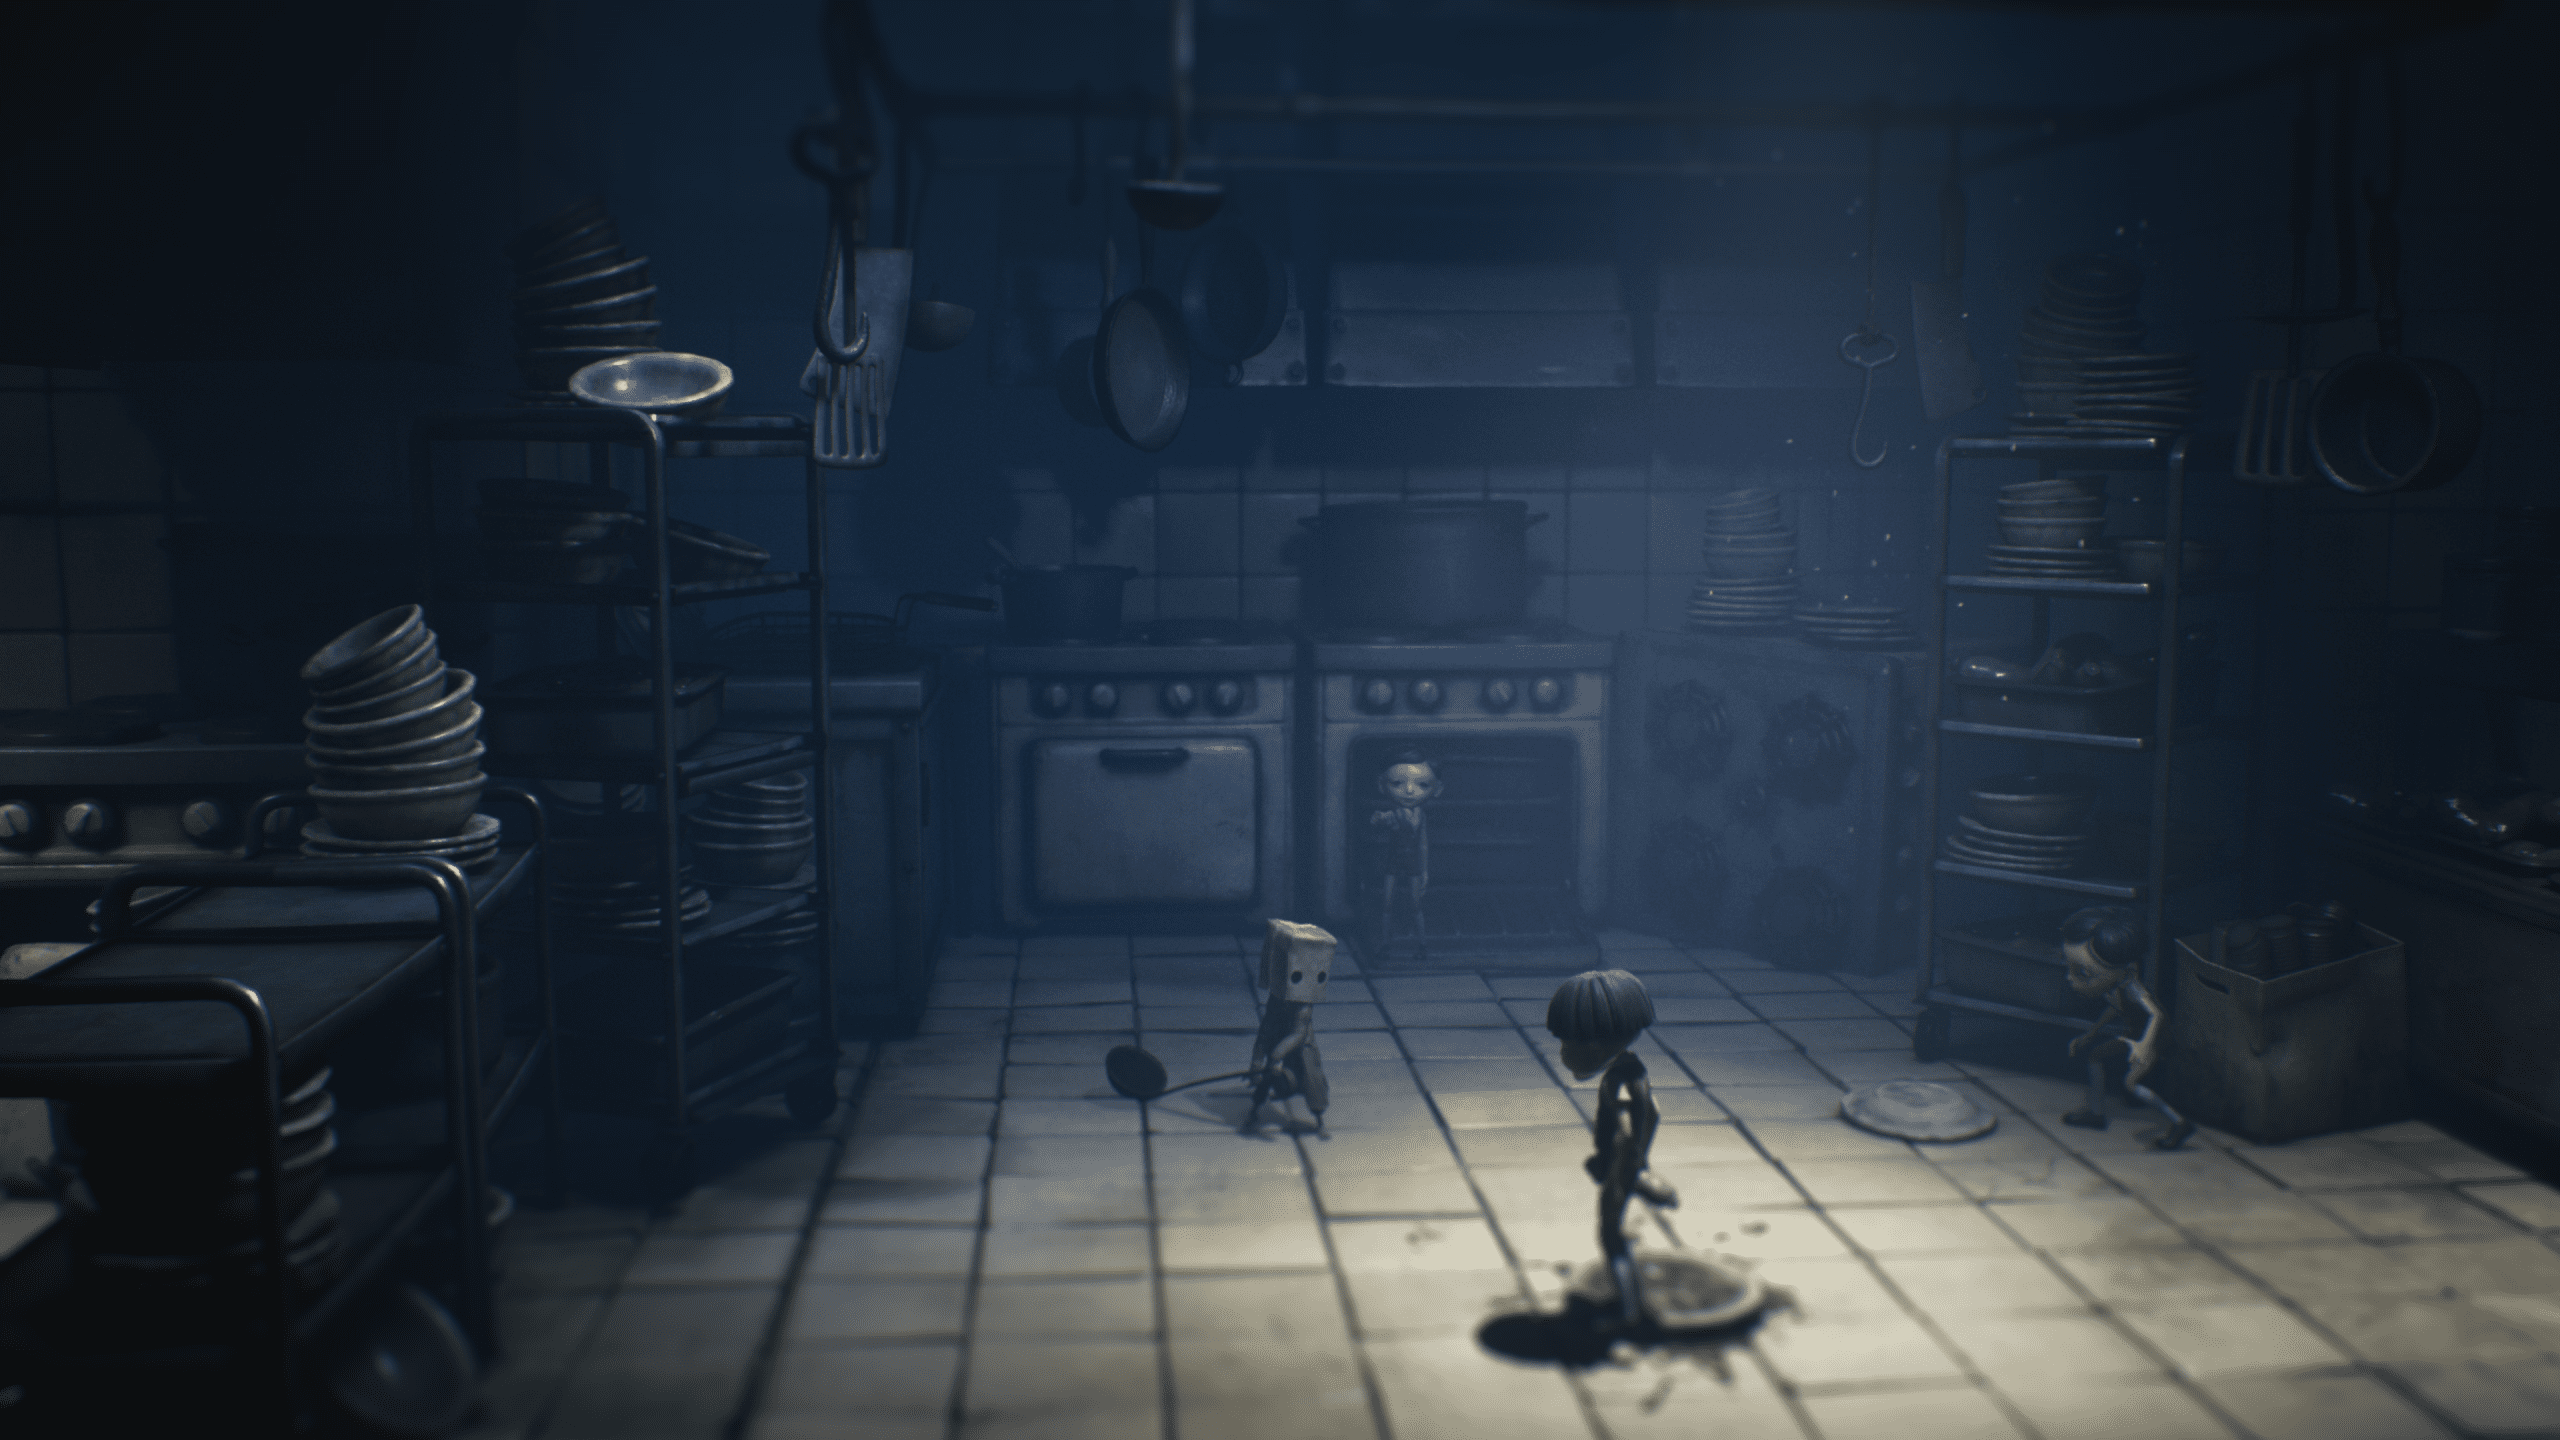 Little Nightmares II free demo available on PlayStation 4 and Xbox One today